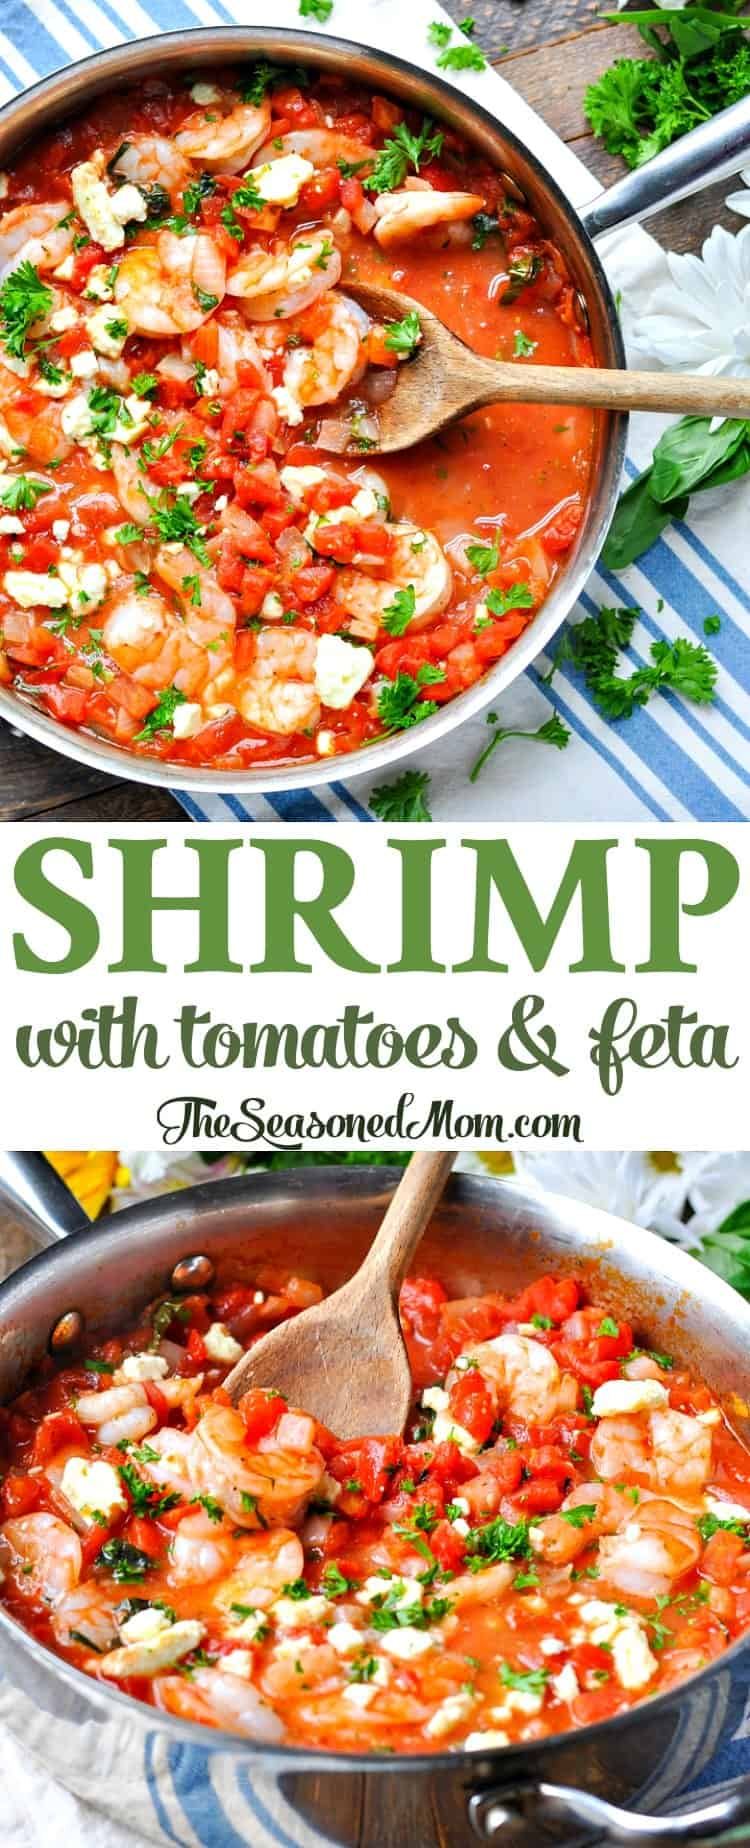 Shrimp with Tomatoes and Feta   Easy Dinner Recipes   Healthy Dinners   Healthy Dinner Recipes   Dinner Ideas   High Protein   Low Carb   Seafood Recipes   One Skillet   One Pan   Shrimp Recipes   Mediterranean Recipes   Mediterranean Food